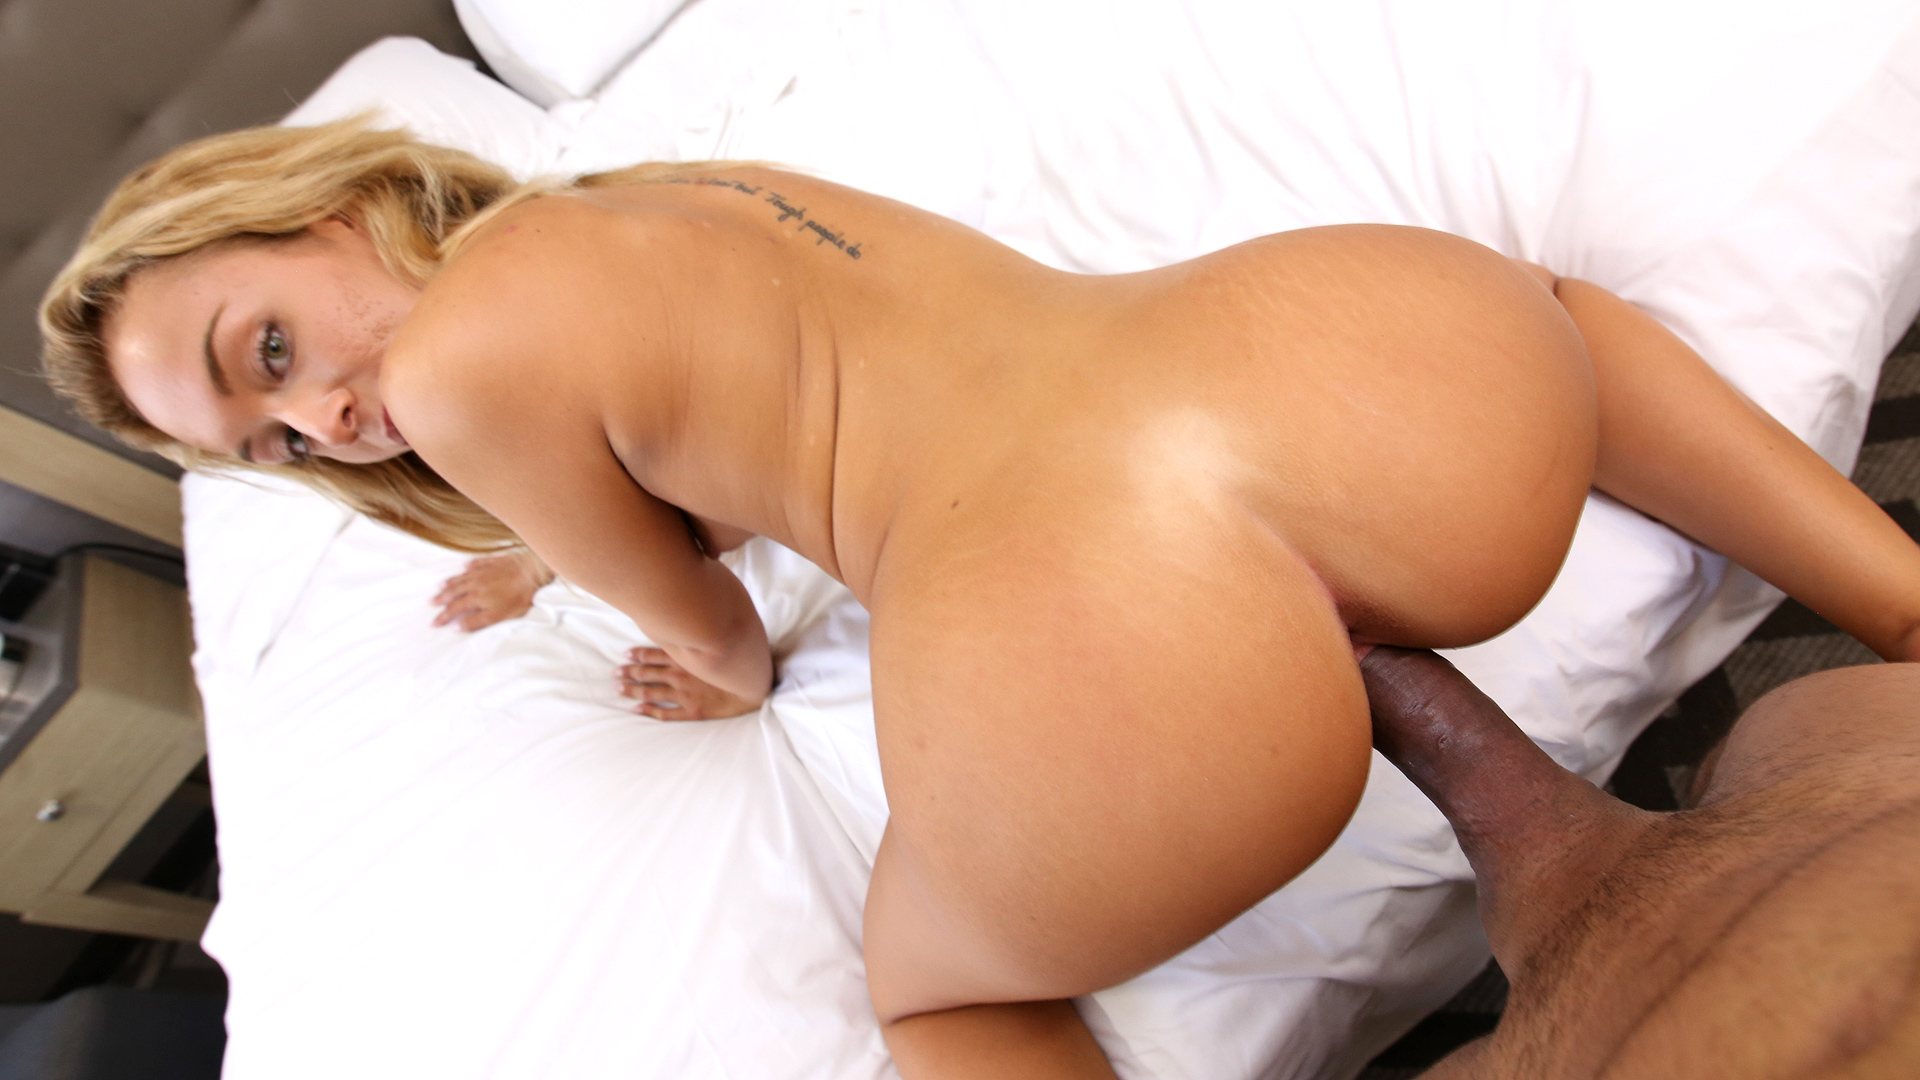 Big dick lover fucks for cash indianhomemadexxx